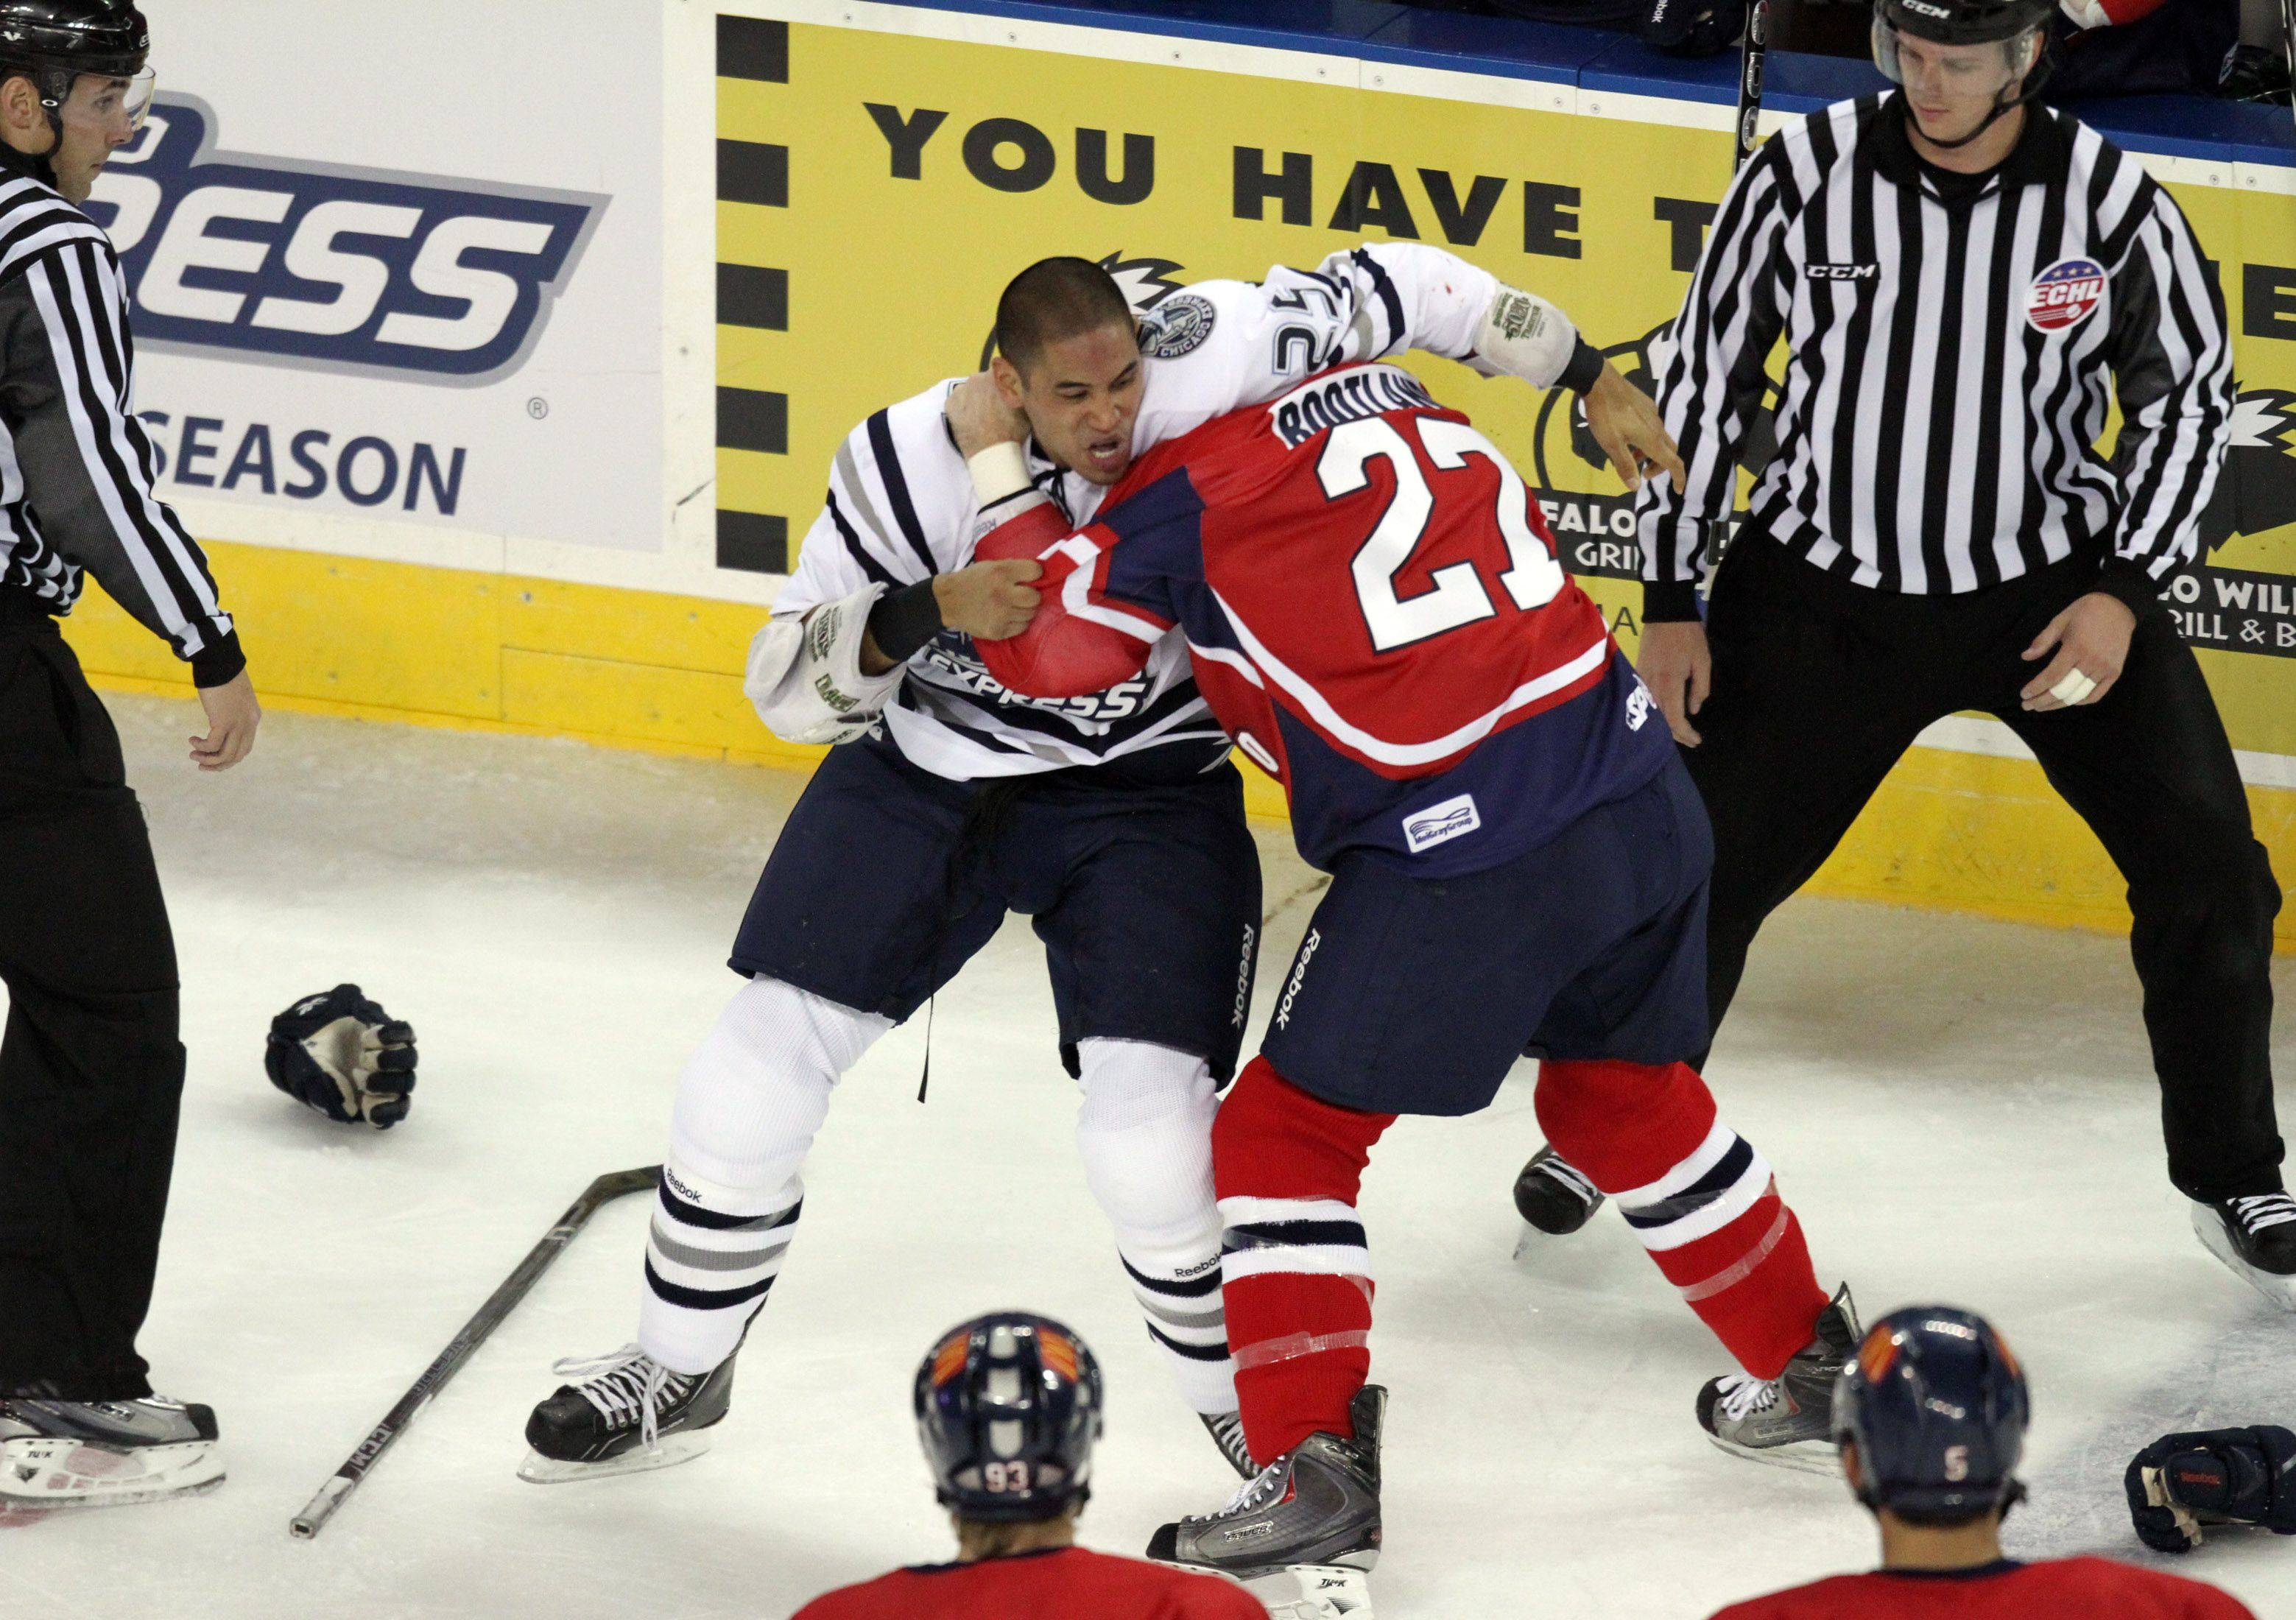 A lengthy fight continued between Chicago Express forward Bobby Robins, left, and Kalamazoo Wings right wing Darryl Bootland after the two fell to the ice and got back up at the Sears Centre in Hoffman Estates on Saturday, October 22nd.